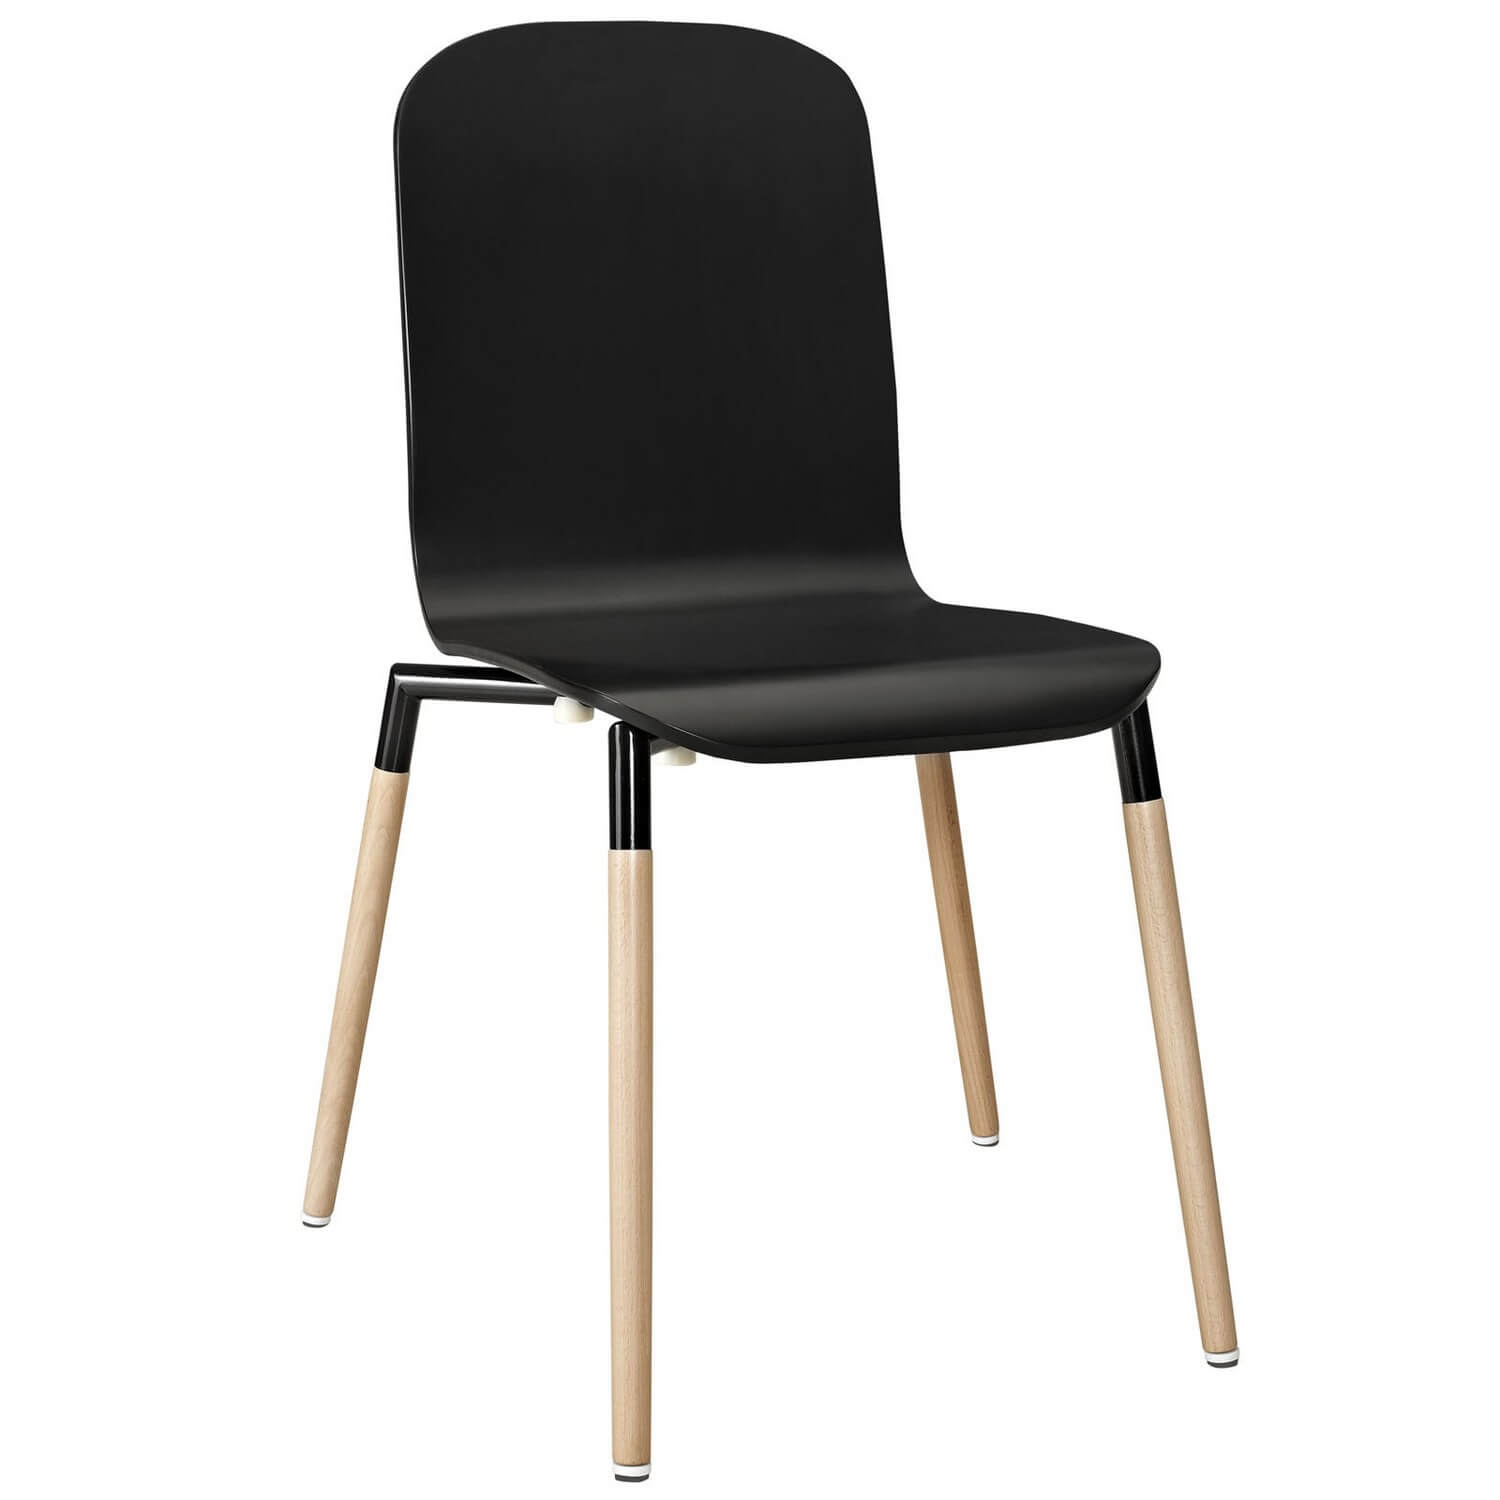 Restaurant chairs CUB EEI 1054 BLK MOD